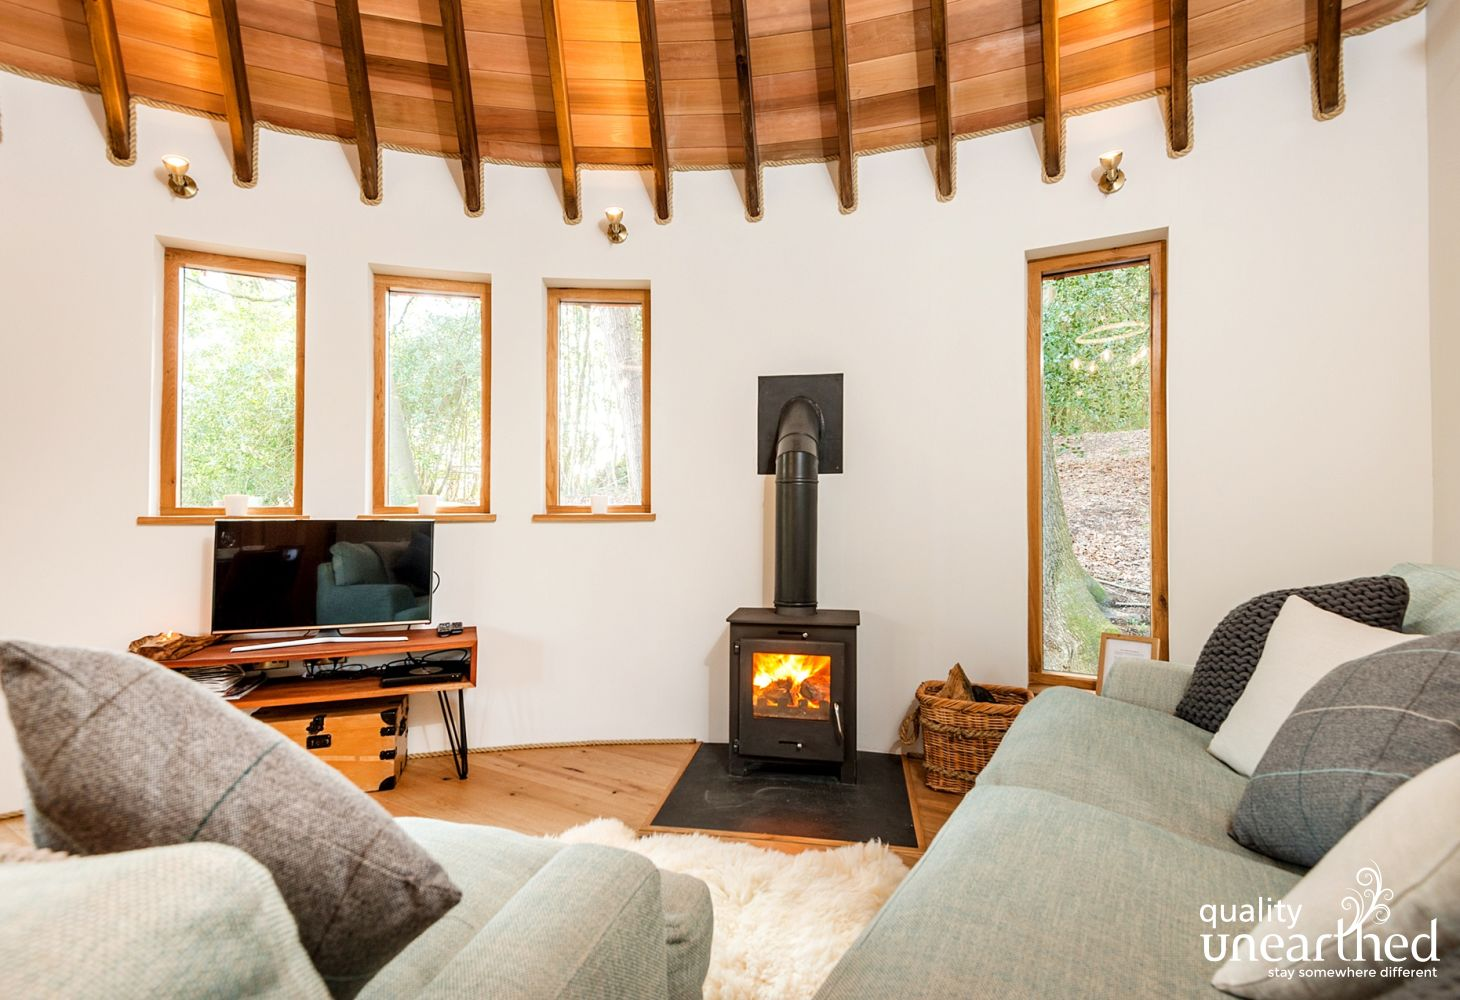 A roaring log burner, comfy seats and a sat tv in the treehouse living area